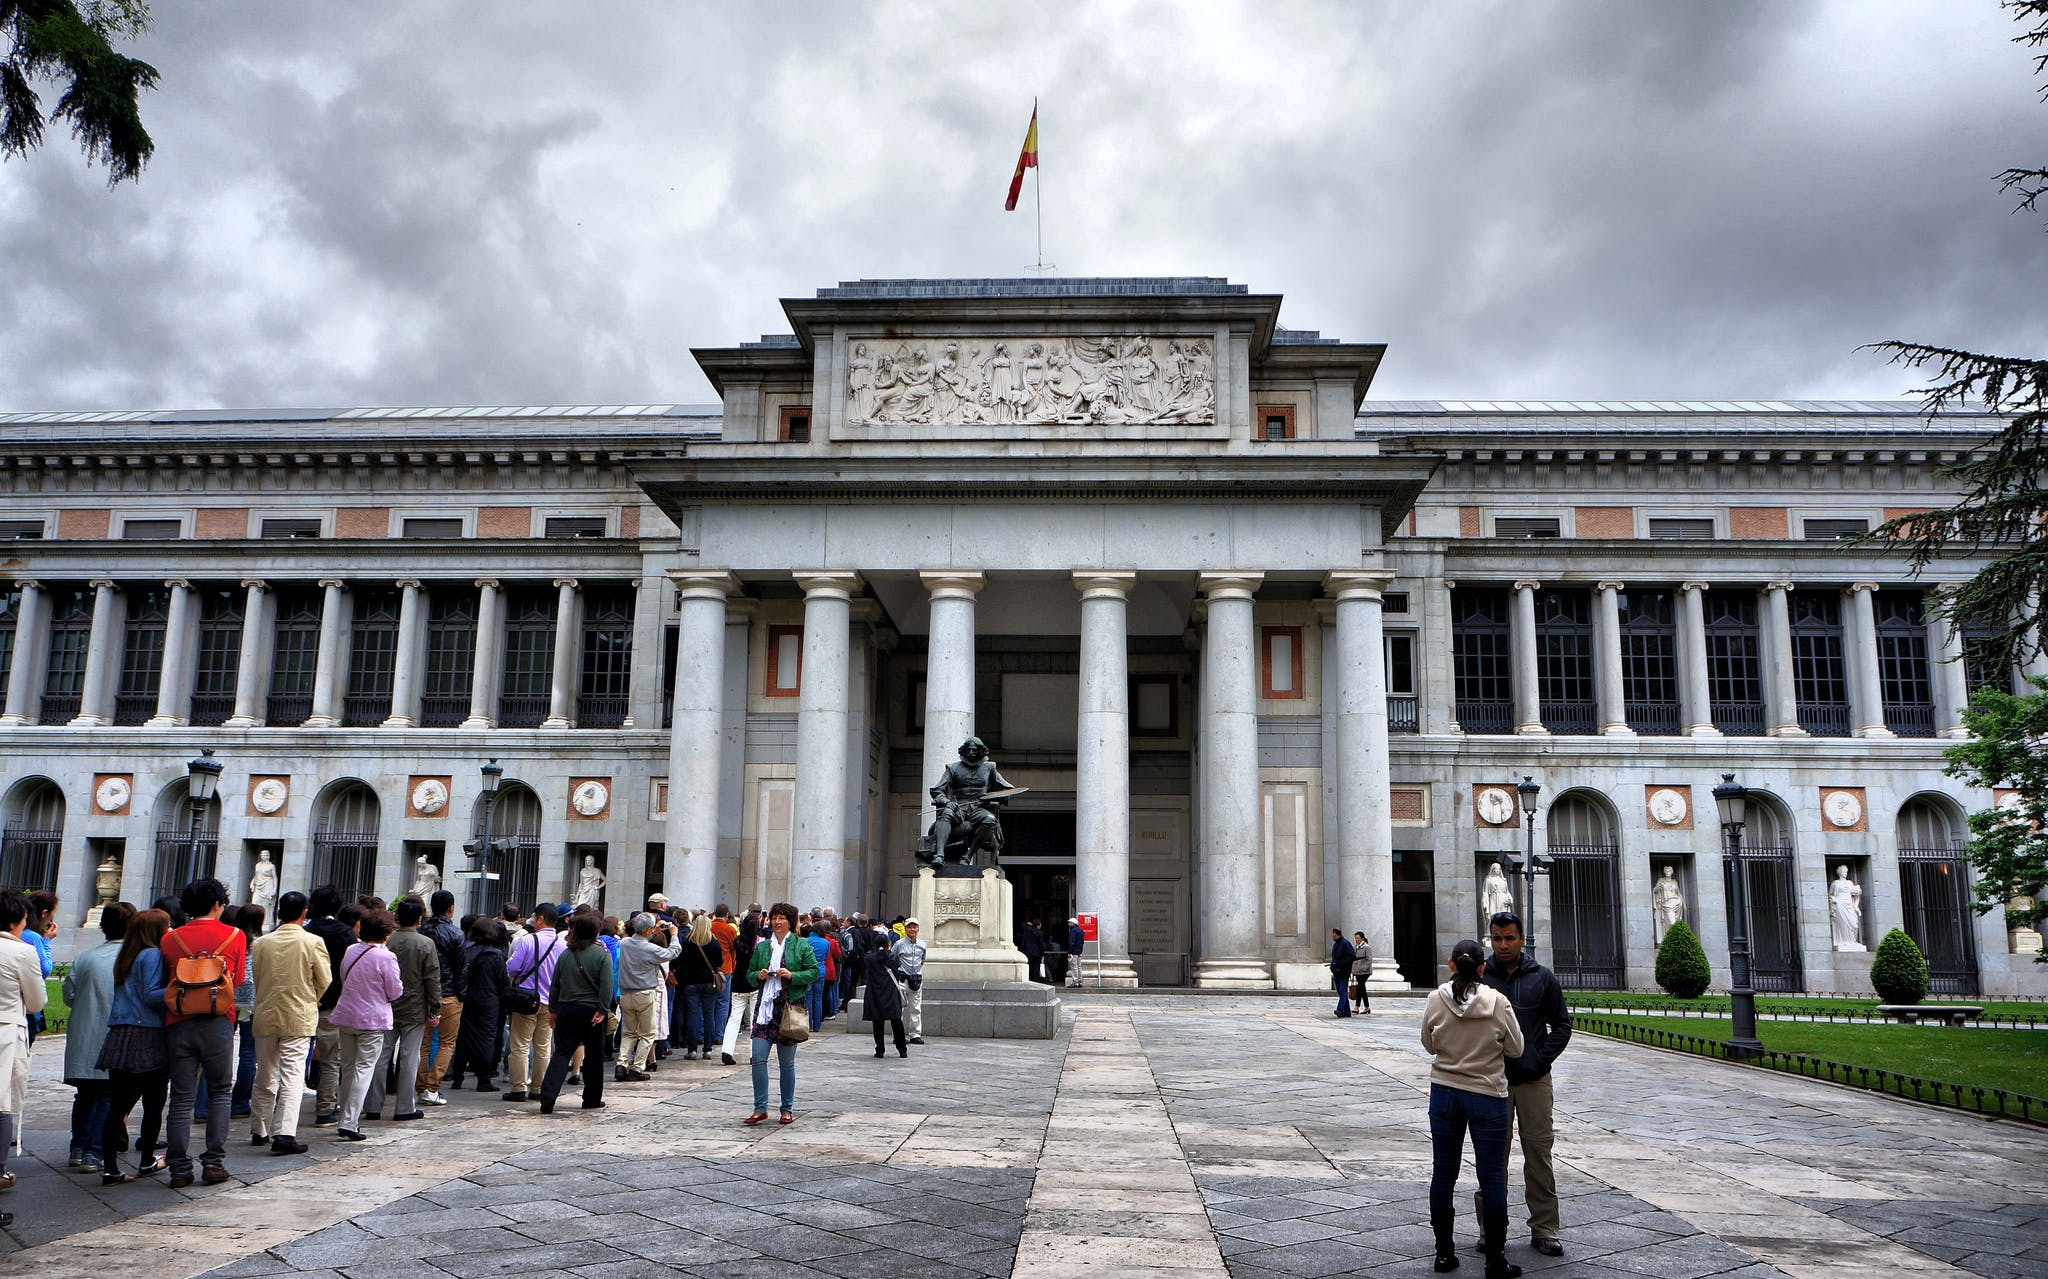 prado museum guided tour with skip the line entry-1